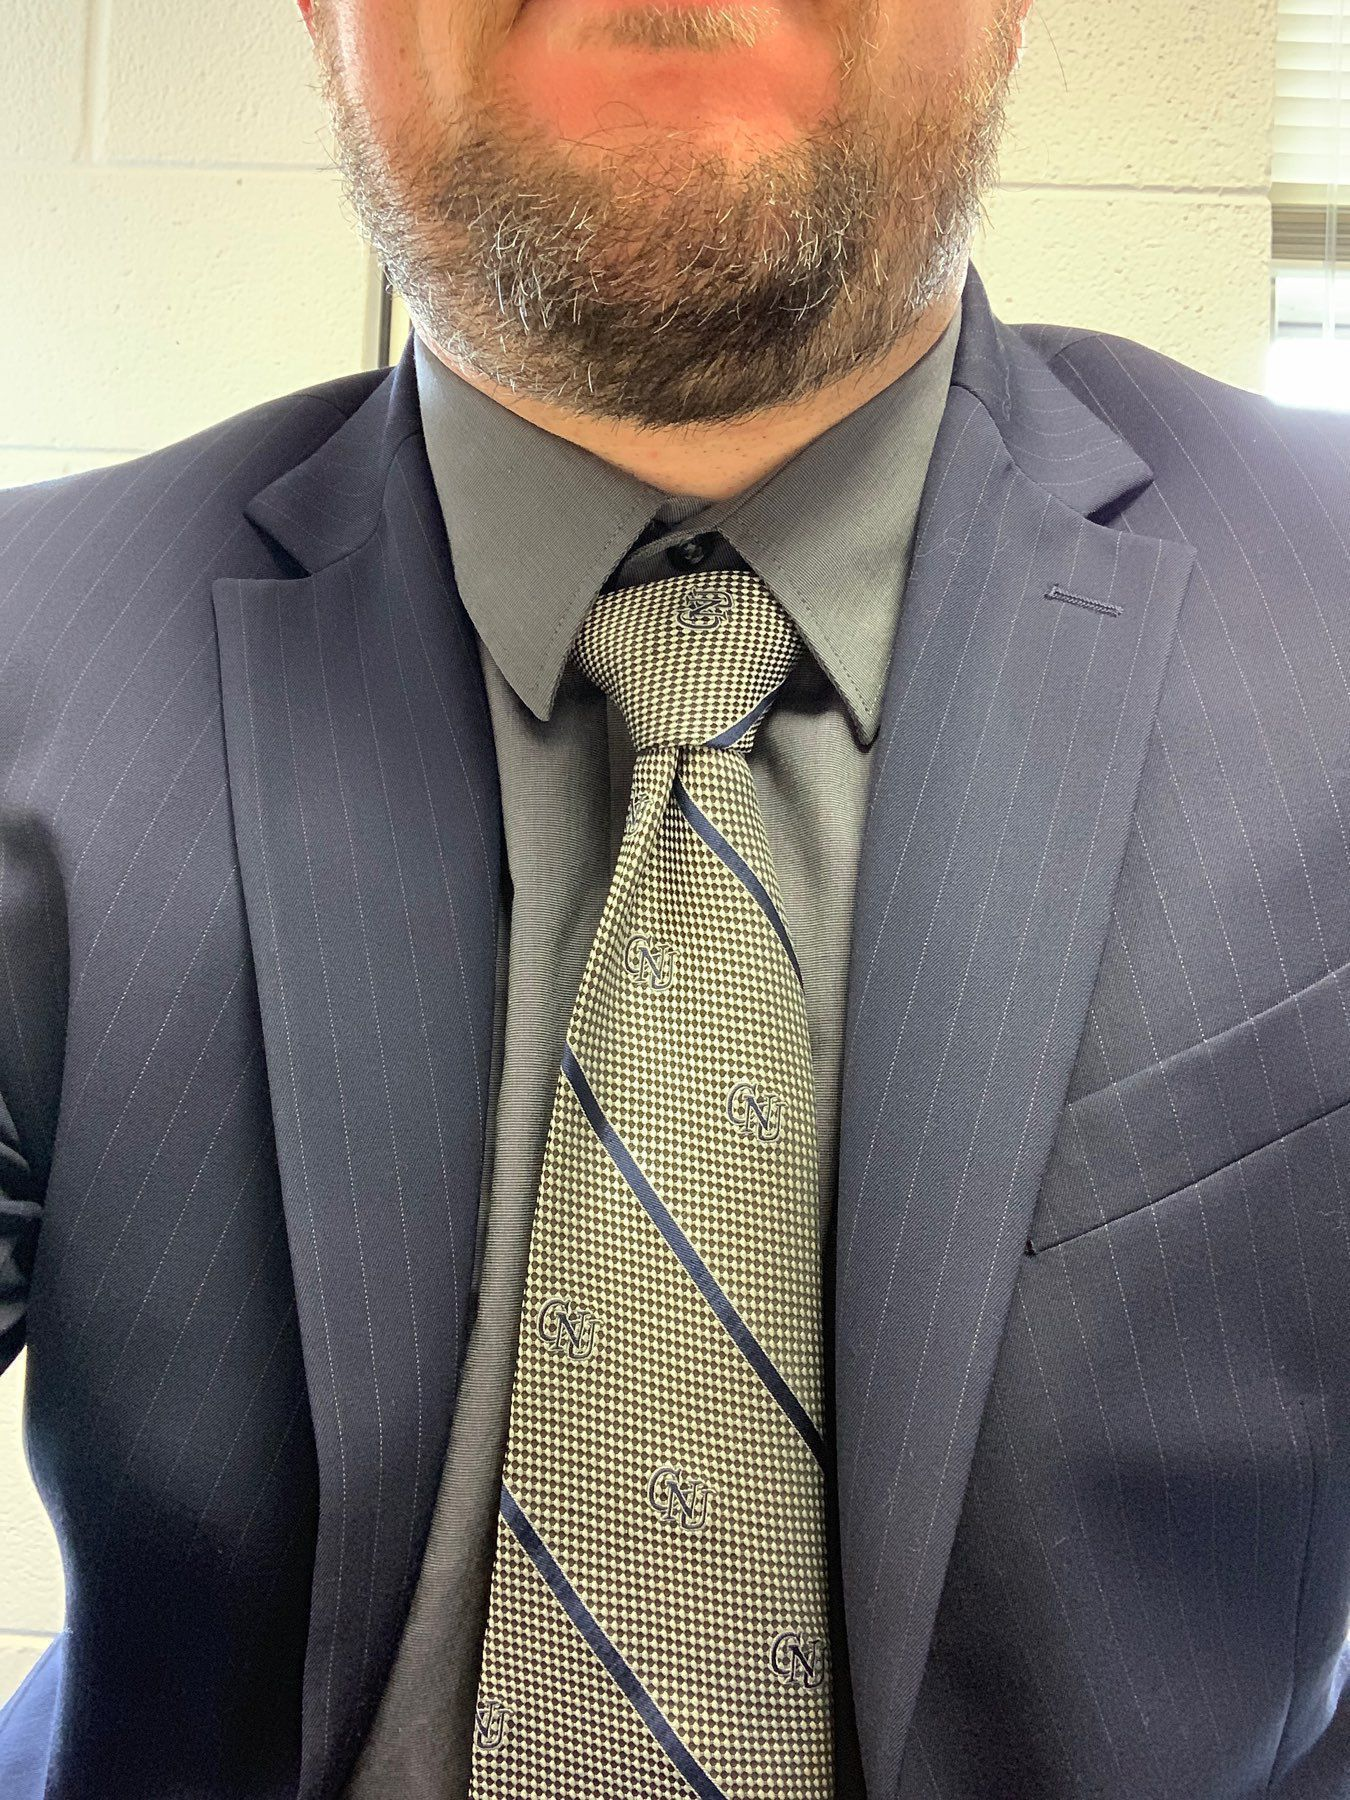 Bearded man, from chin down, in blue pinstripe suit with silver and blue neck tie